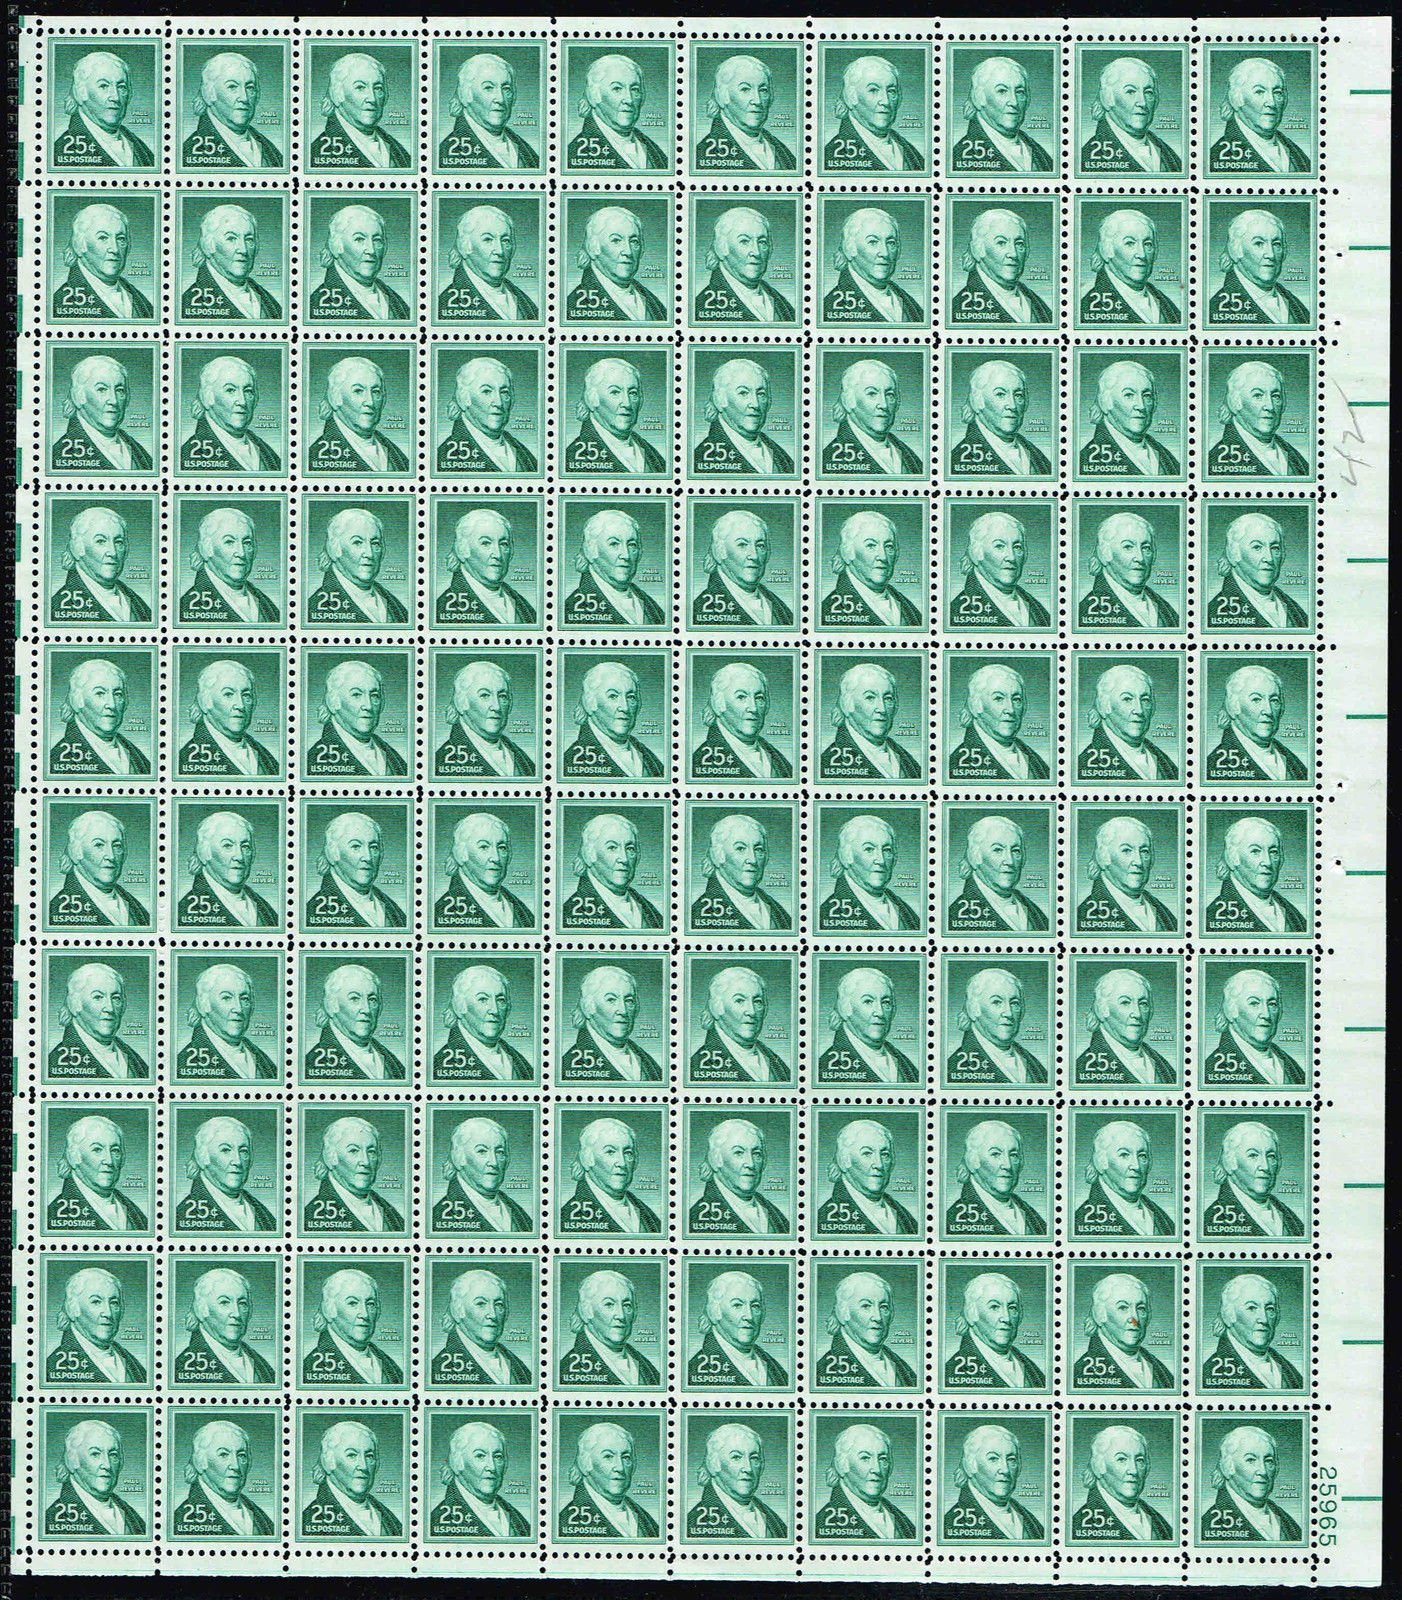 1958 Paul Revere Complete Sheet of 100 - 25 Cent Stamps Scott 1048